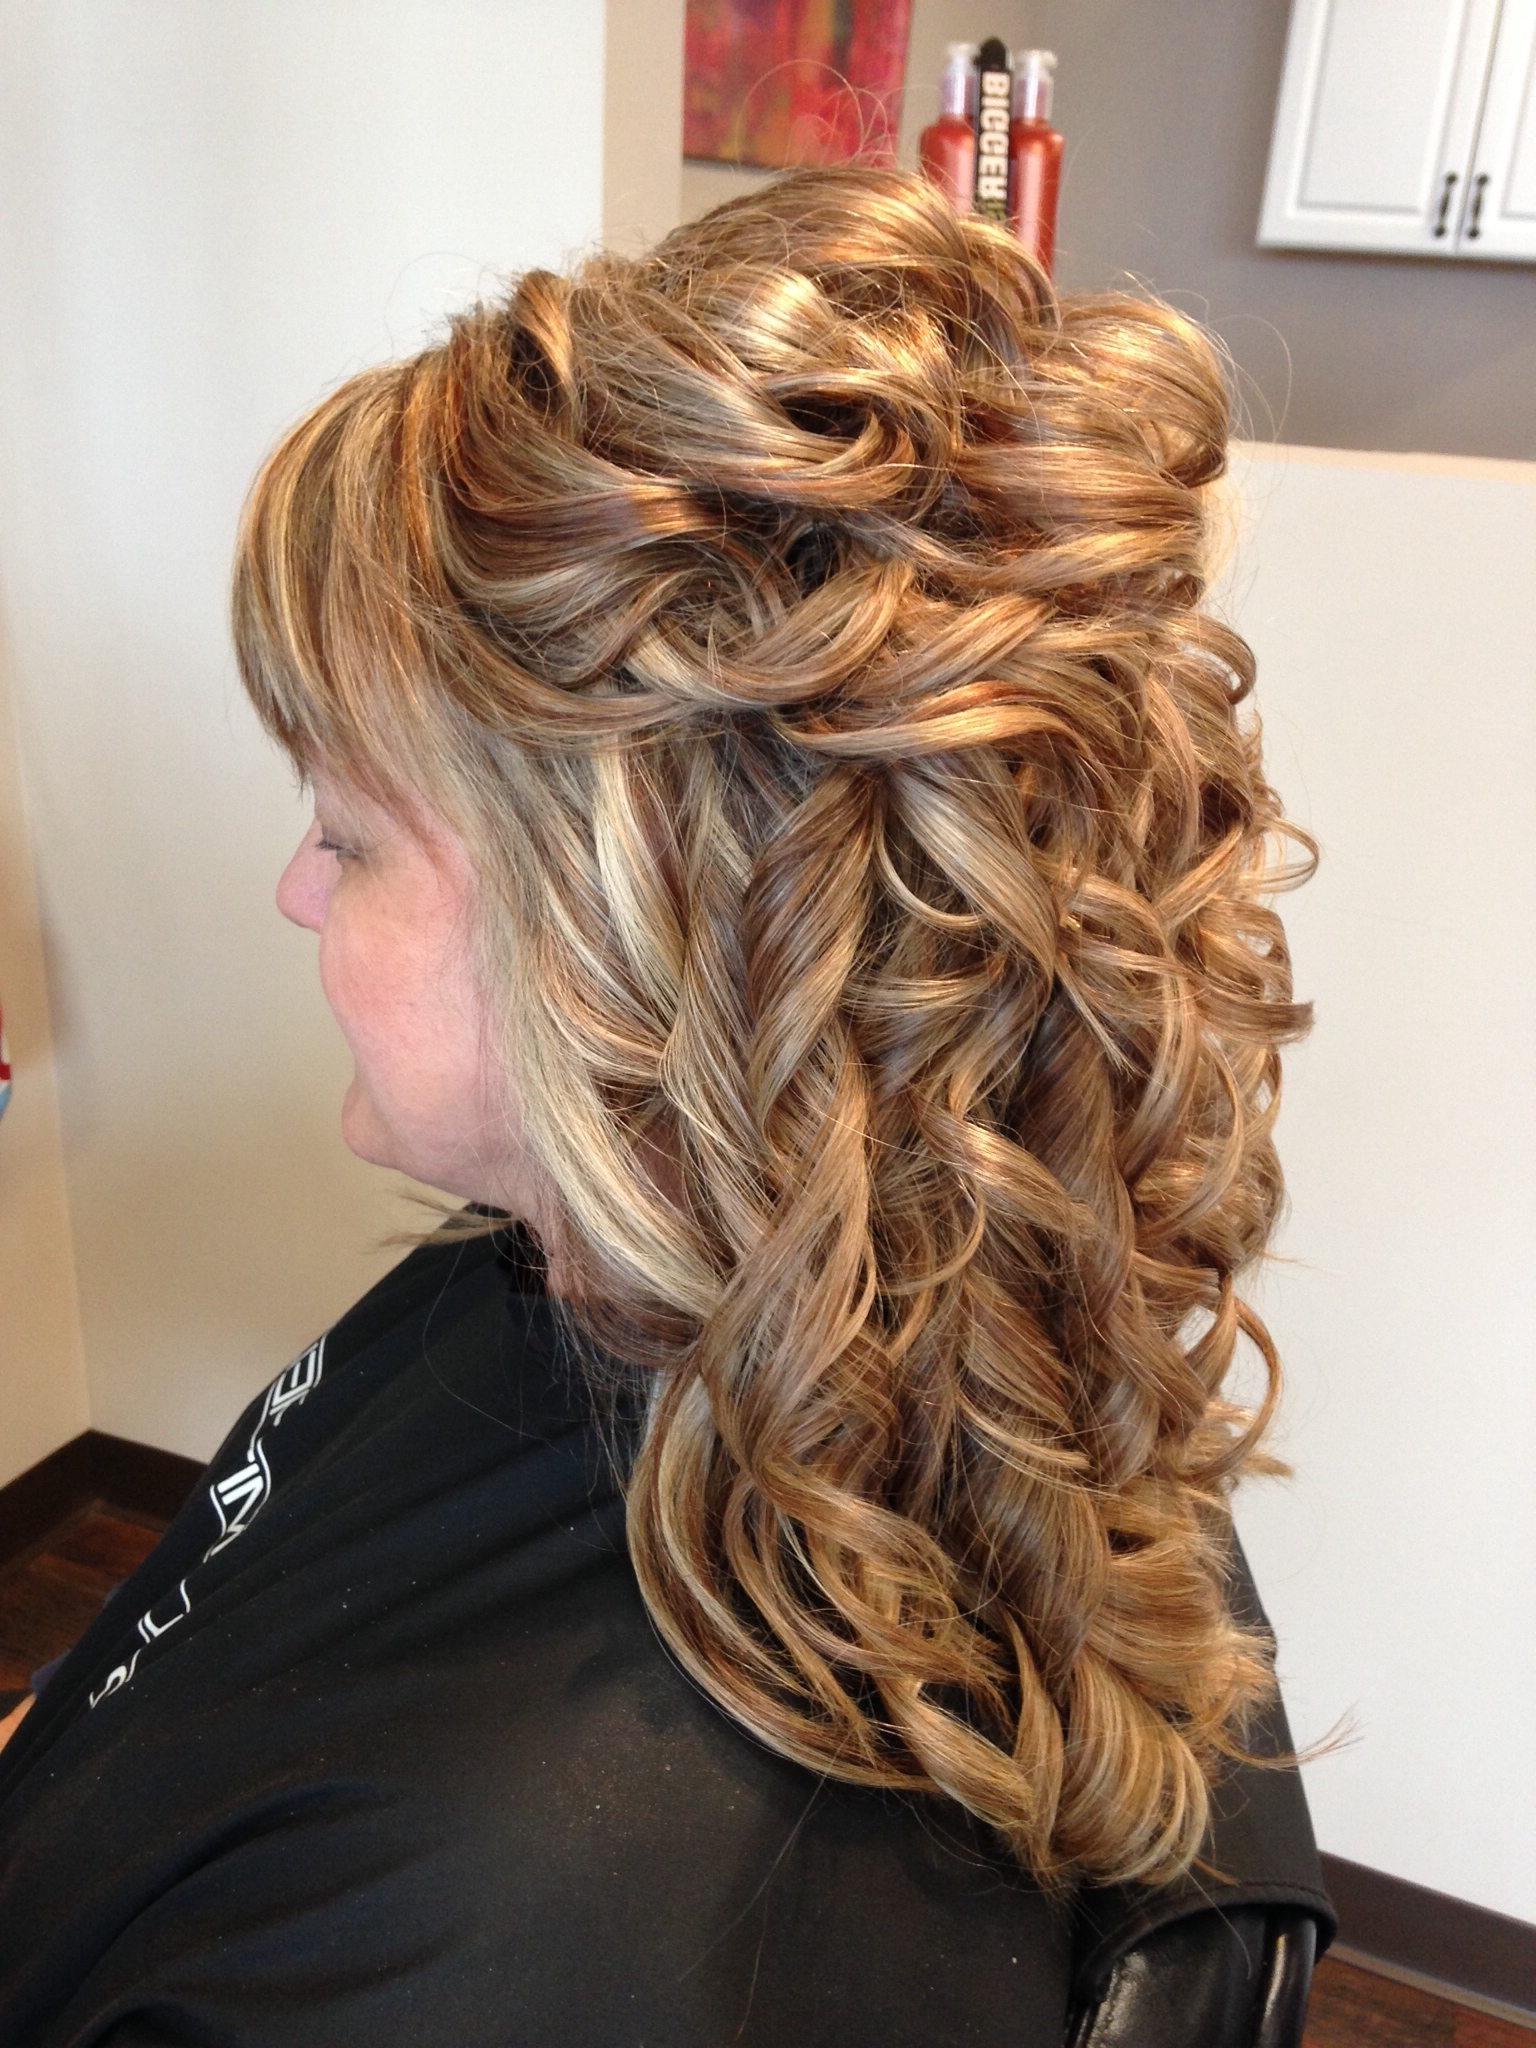 Hair Partial Updo, Formal, Wedding, Prom, Hairstyles, Long Hair For Partial Updo Hairstyles For Long Hair (View 2 of 15)